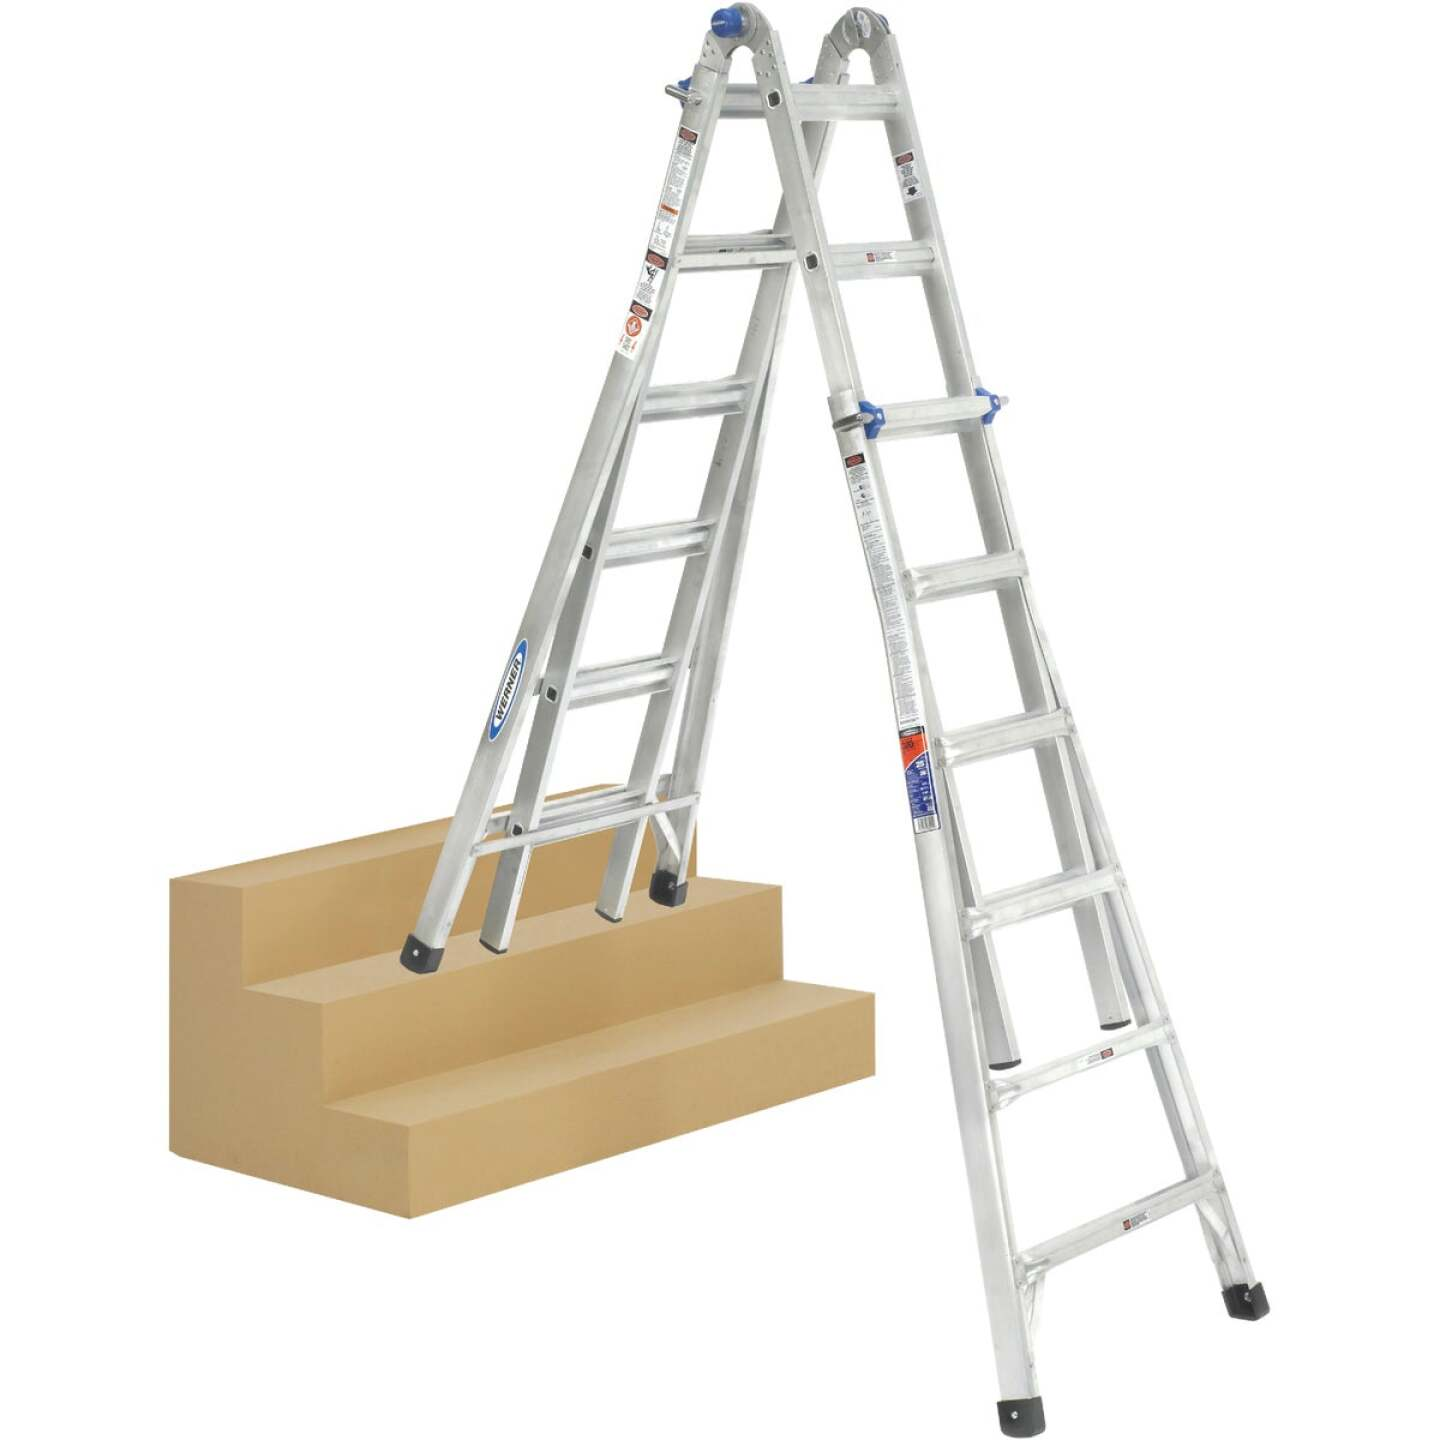 Werner 26 Ft. Aluminum Multi-Position Telescoping Ladder with 300 Lb. Load Capacity Type IA Ladder Rating Image 9